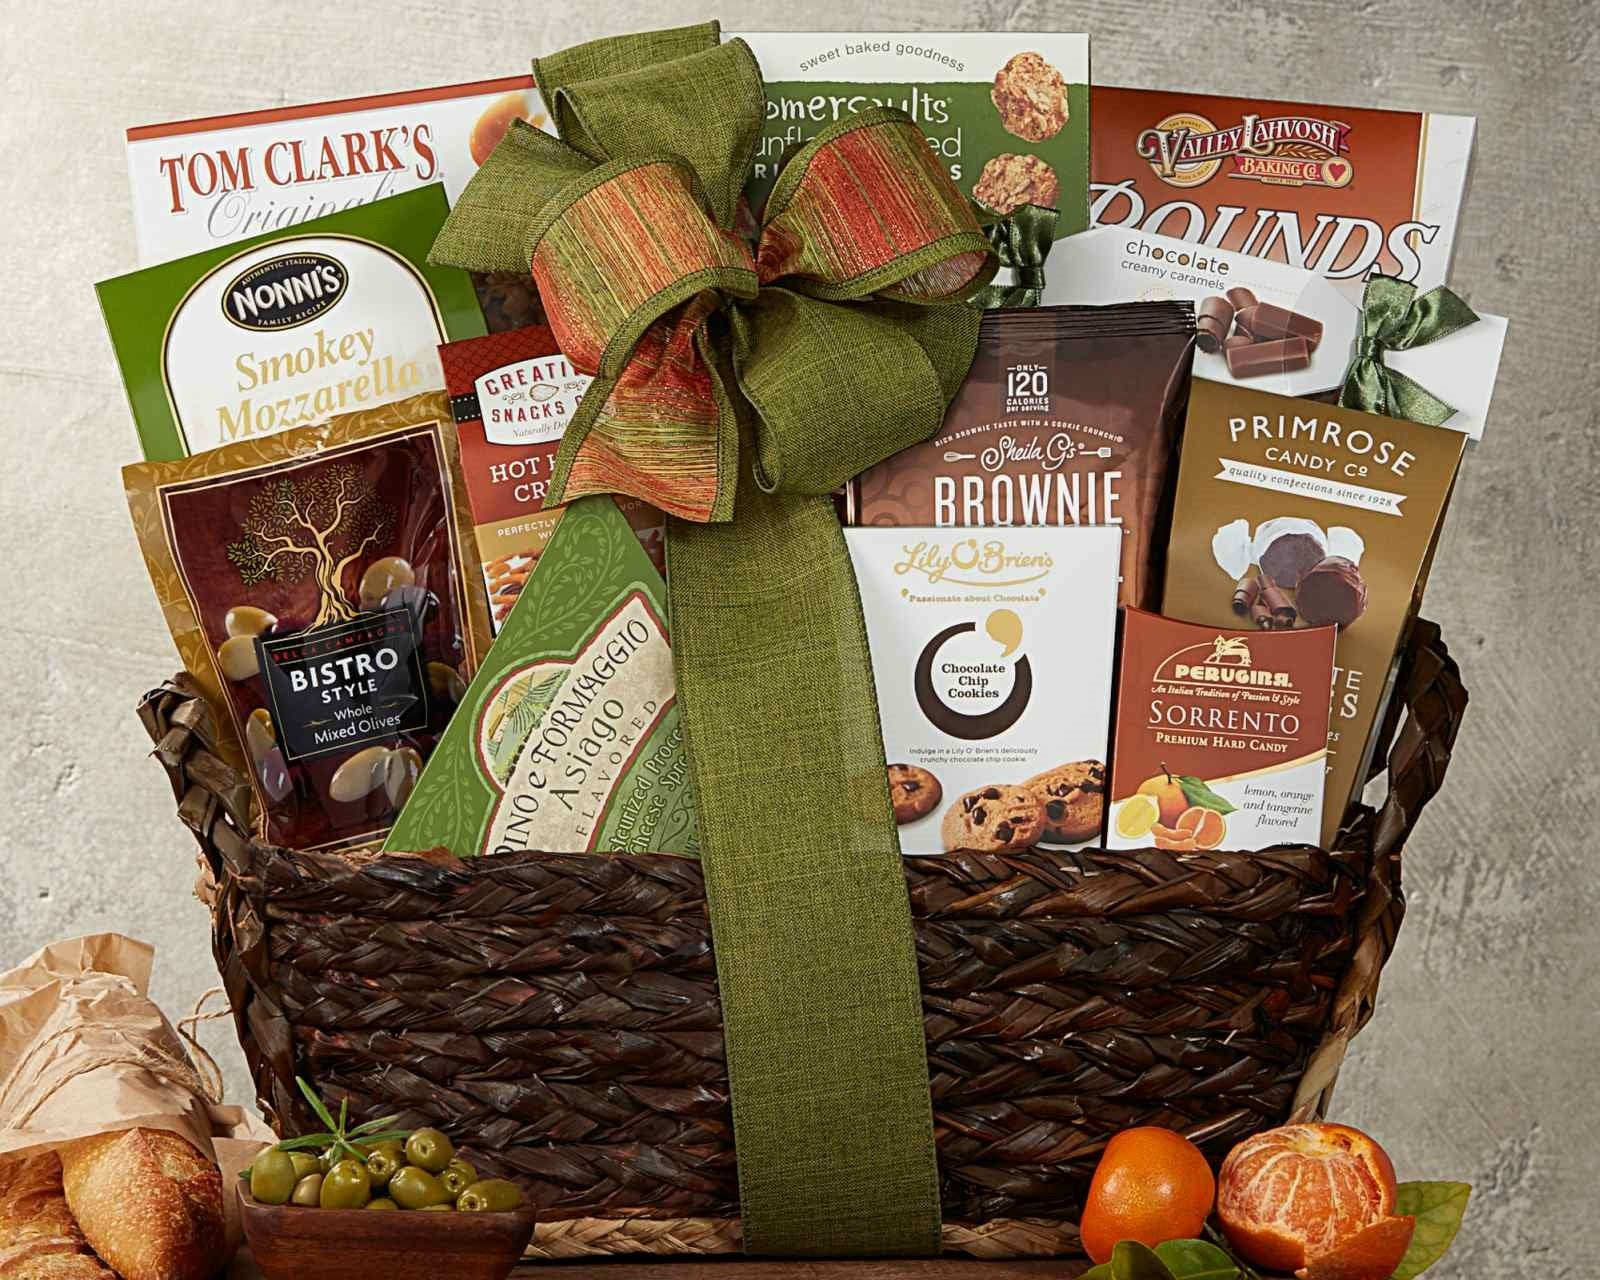 The gourmet choice gift basket by wine country gift baskets free the gourmet choice gift basket by wine country gift baskets free shipping 5and15 negle Image collections